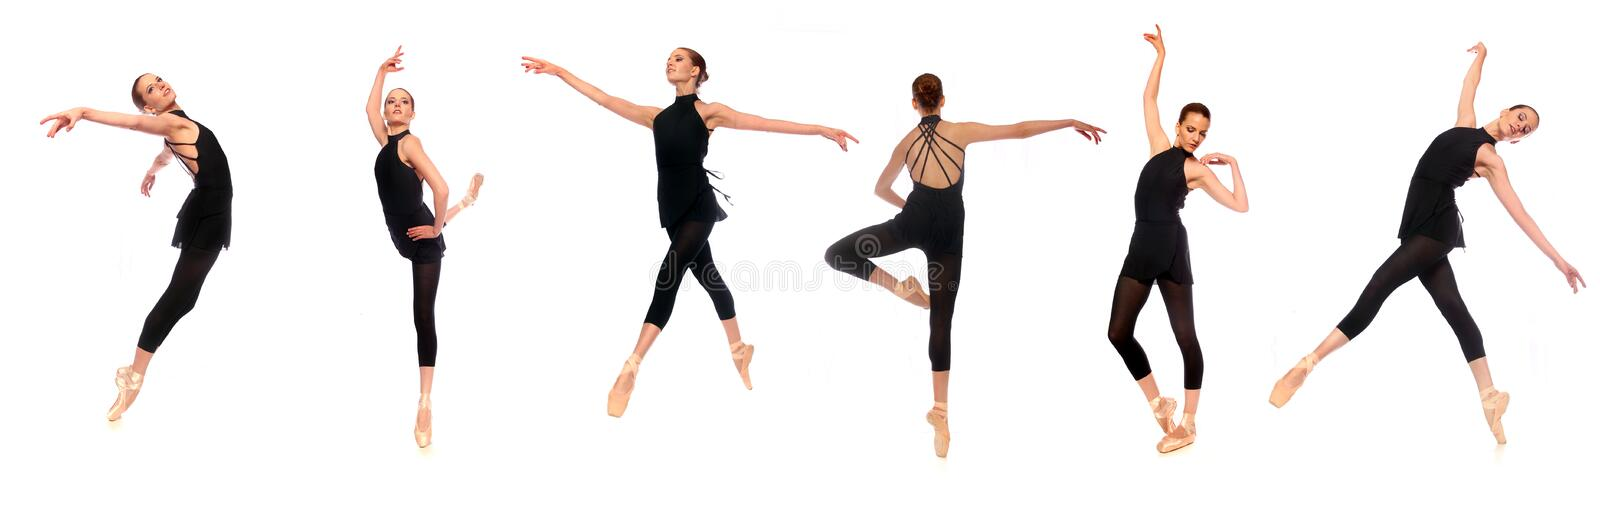 Download Ballet En Pointe Poses In Studio Stock Image - Image: 22604759